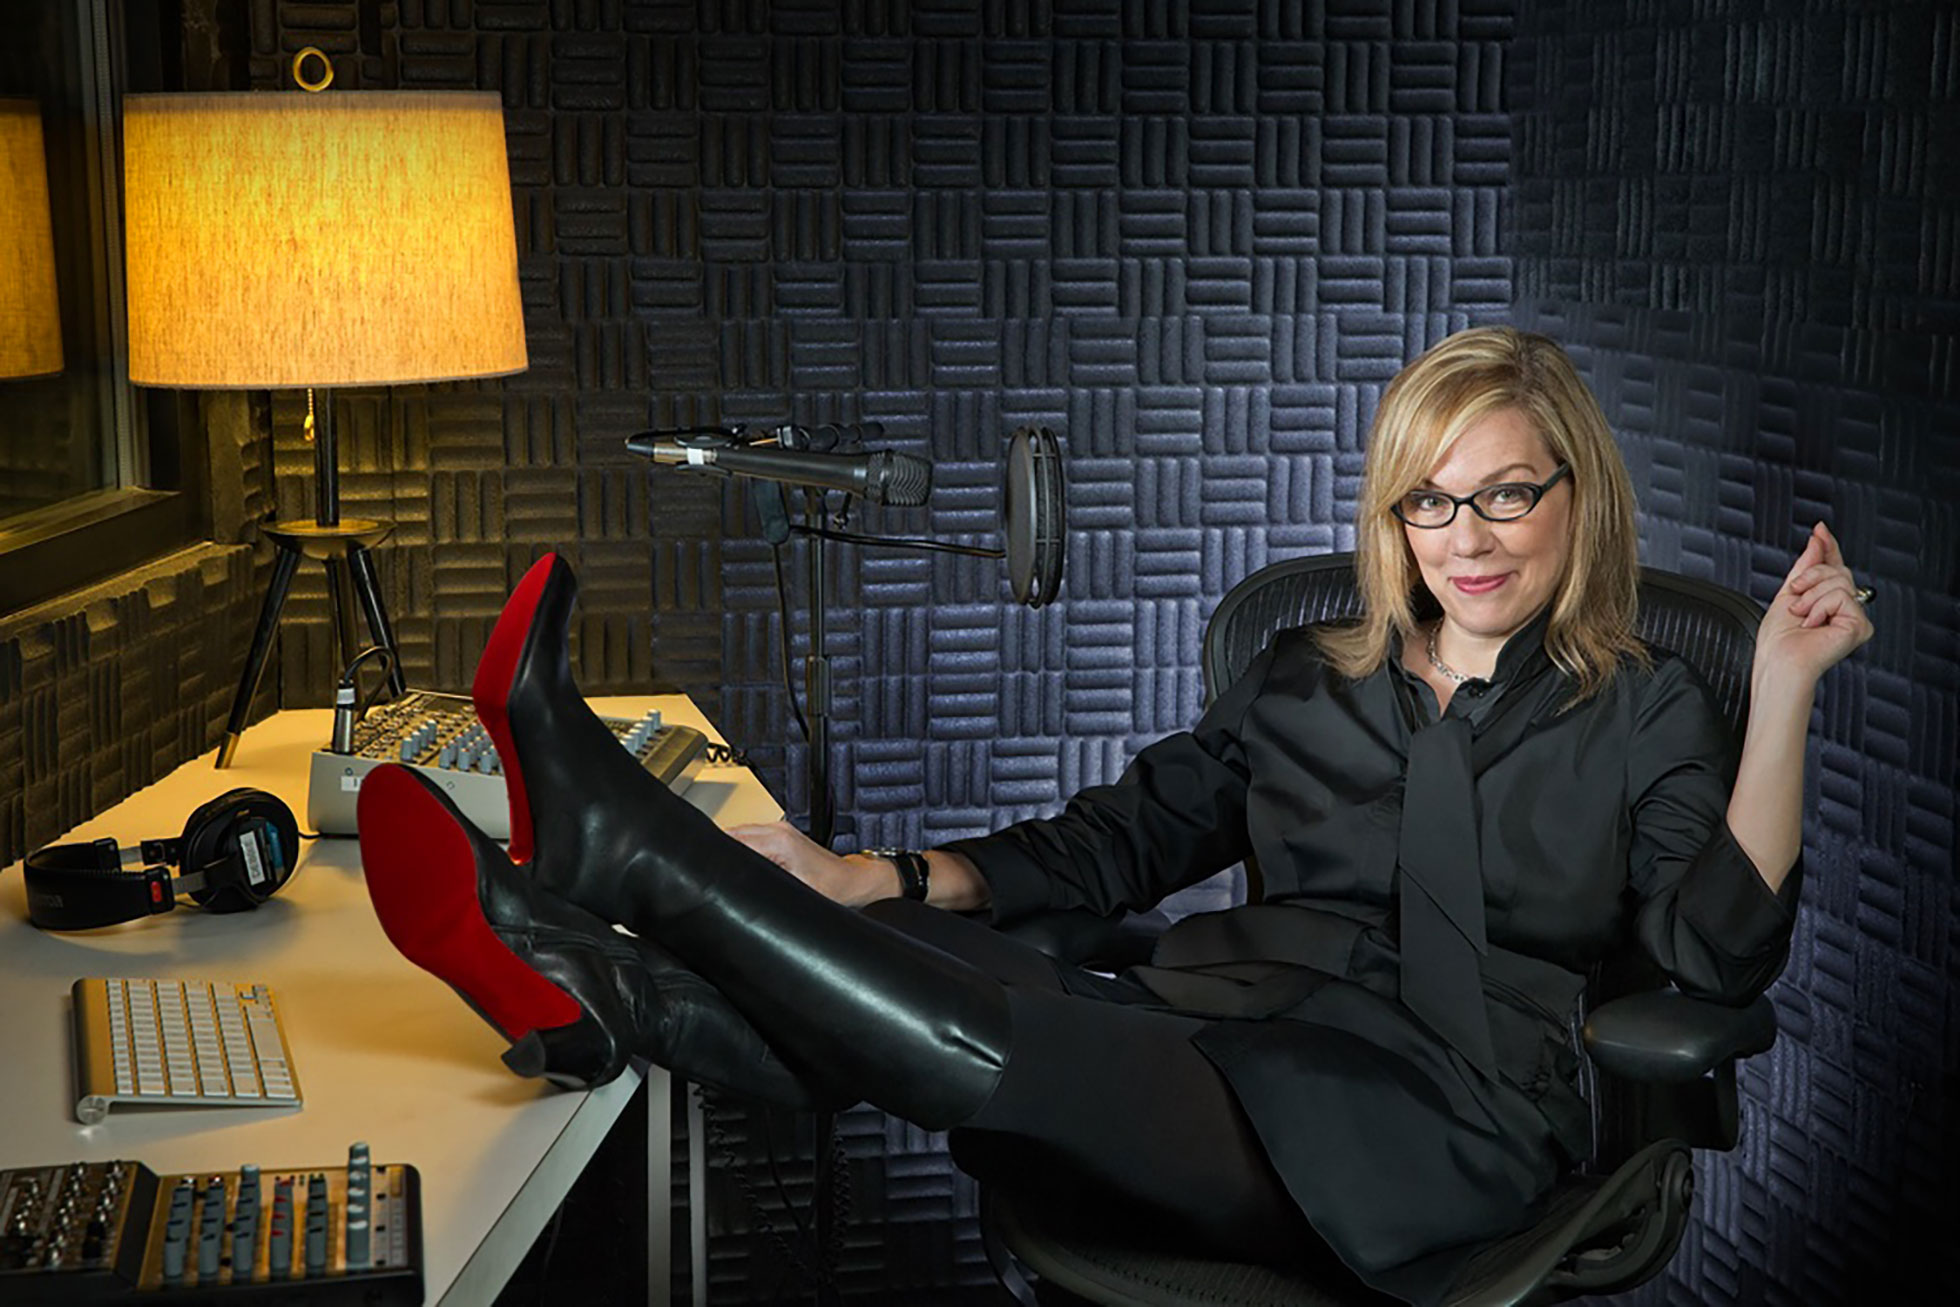 A woman sits in a chair with her feet on the desk inside of a recording studio.